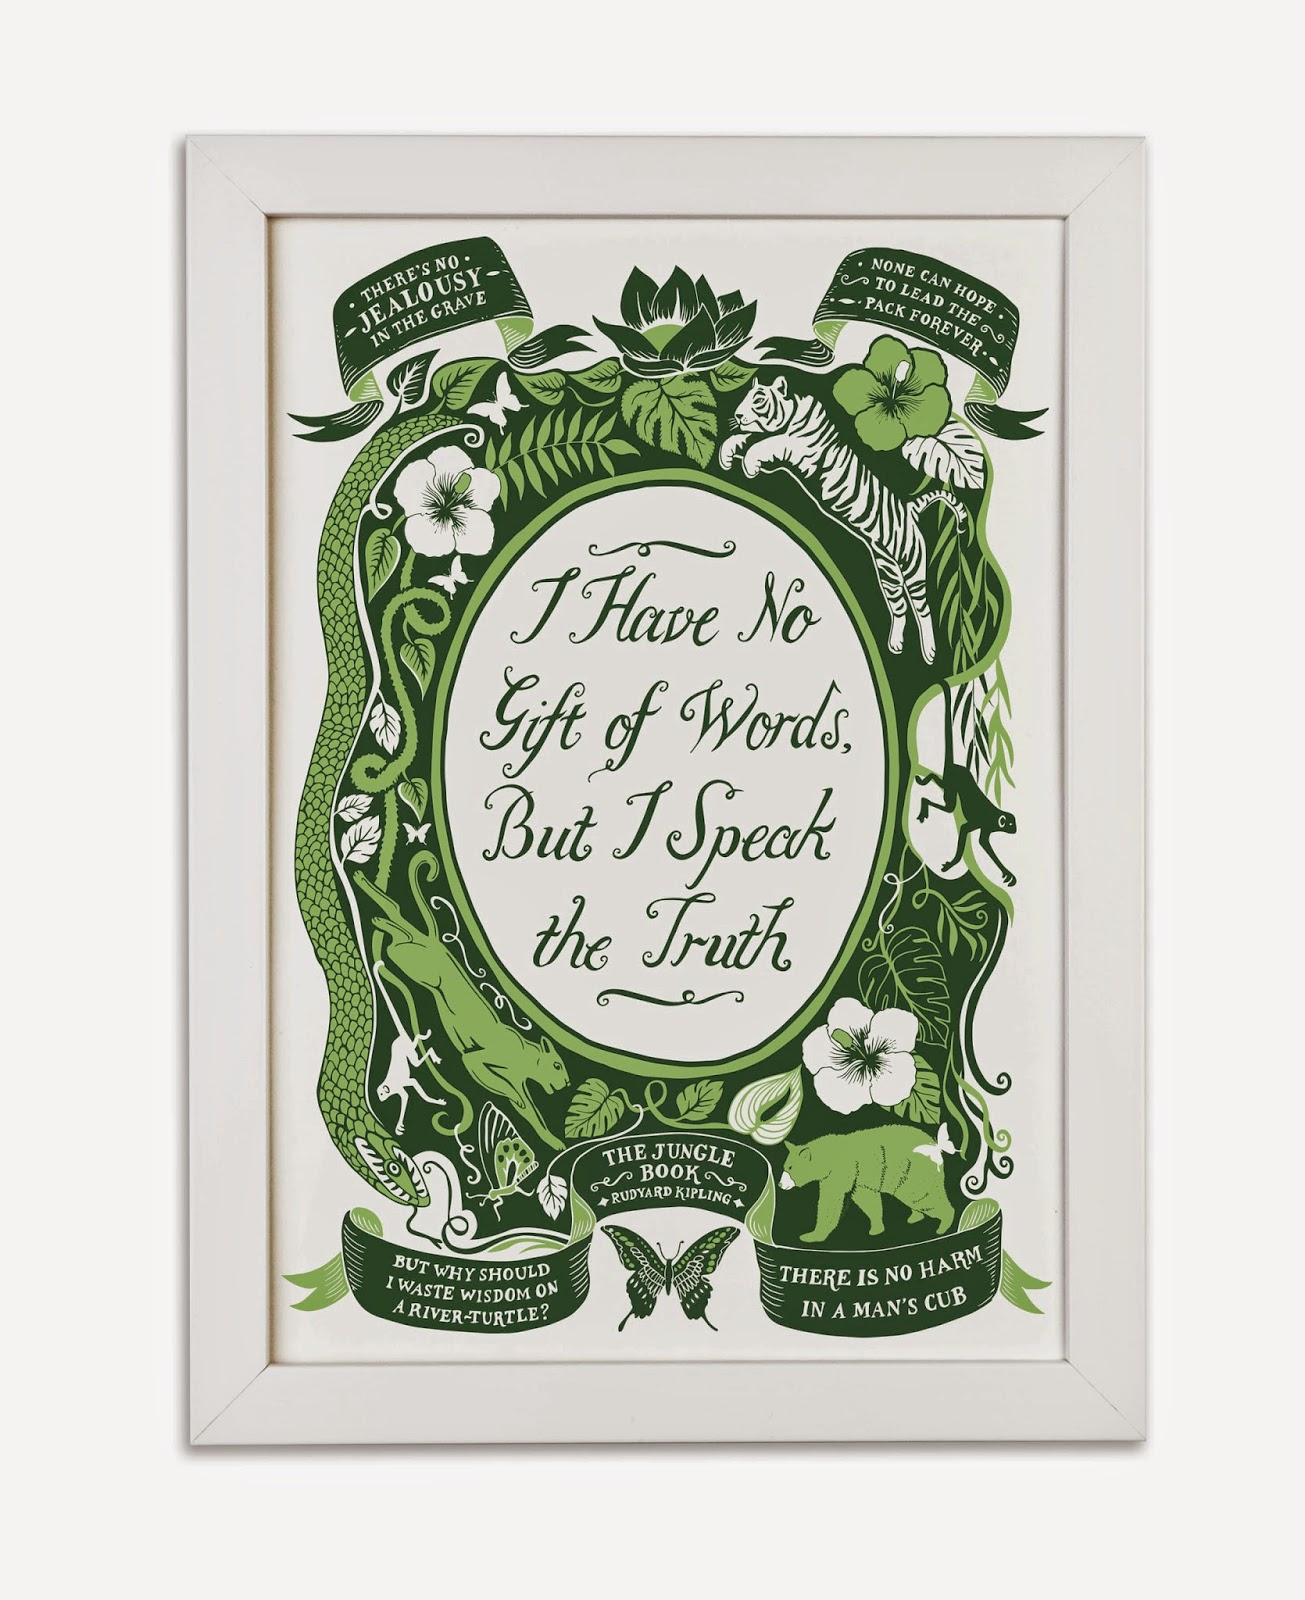 http://www.lucylovesthis.com/ourshop/prod_3518491-Jungle-Book-Famous-Quotes-Print.html